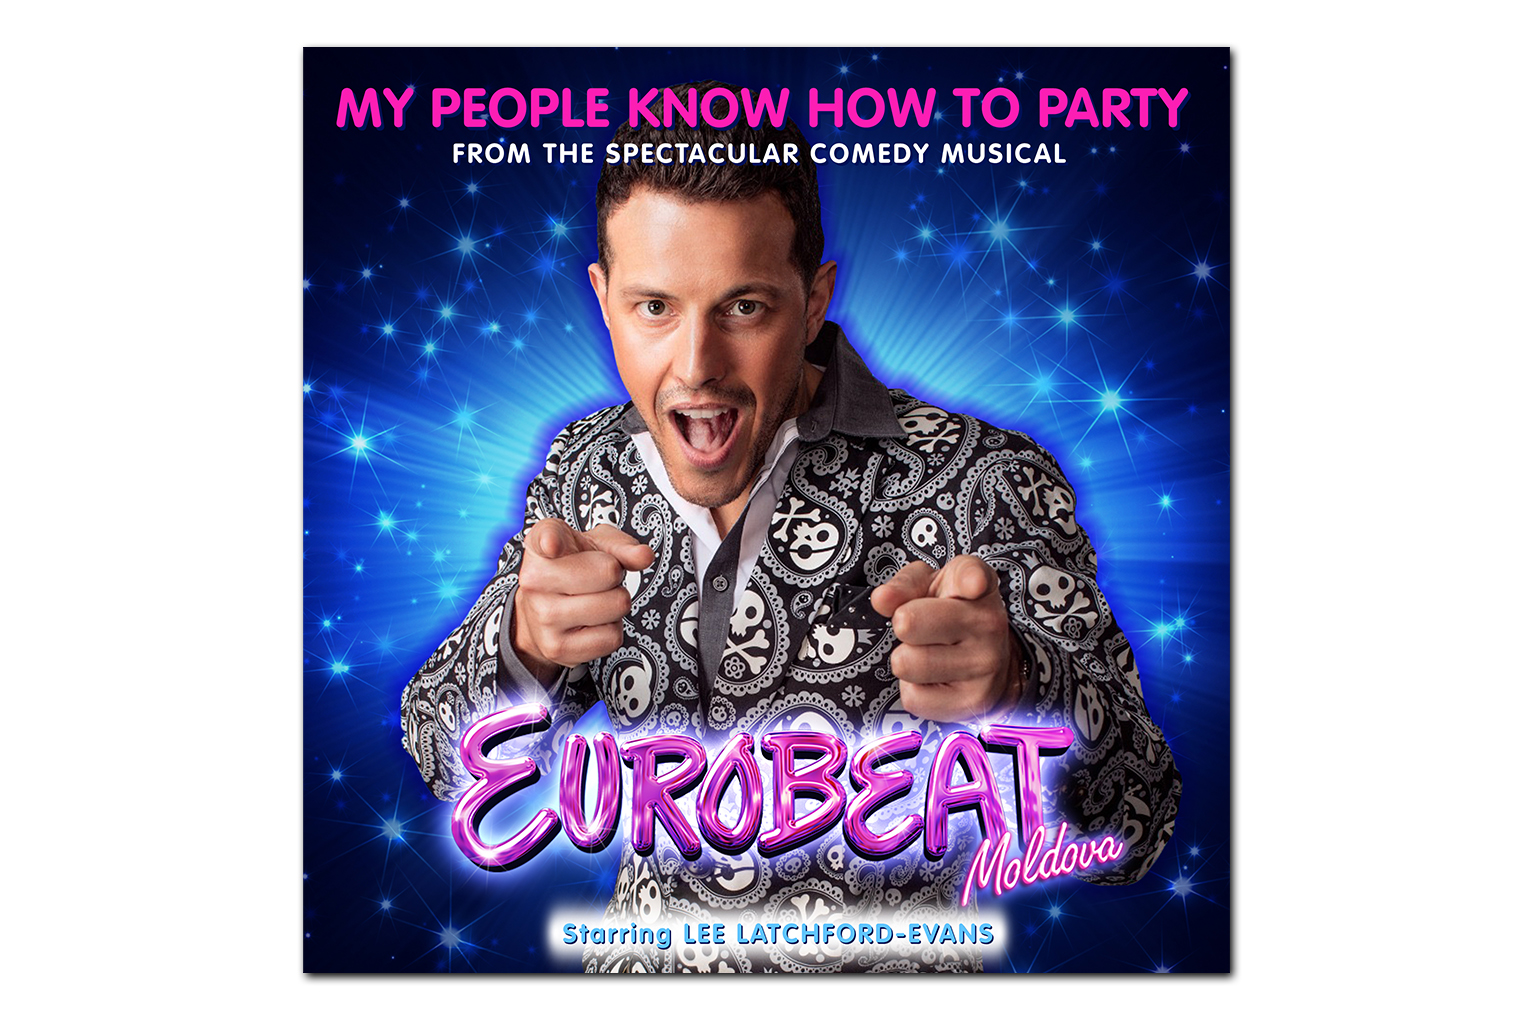 Eurobeat Moldova My People Know How To Party Single Lee Latchford-Evans